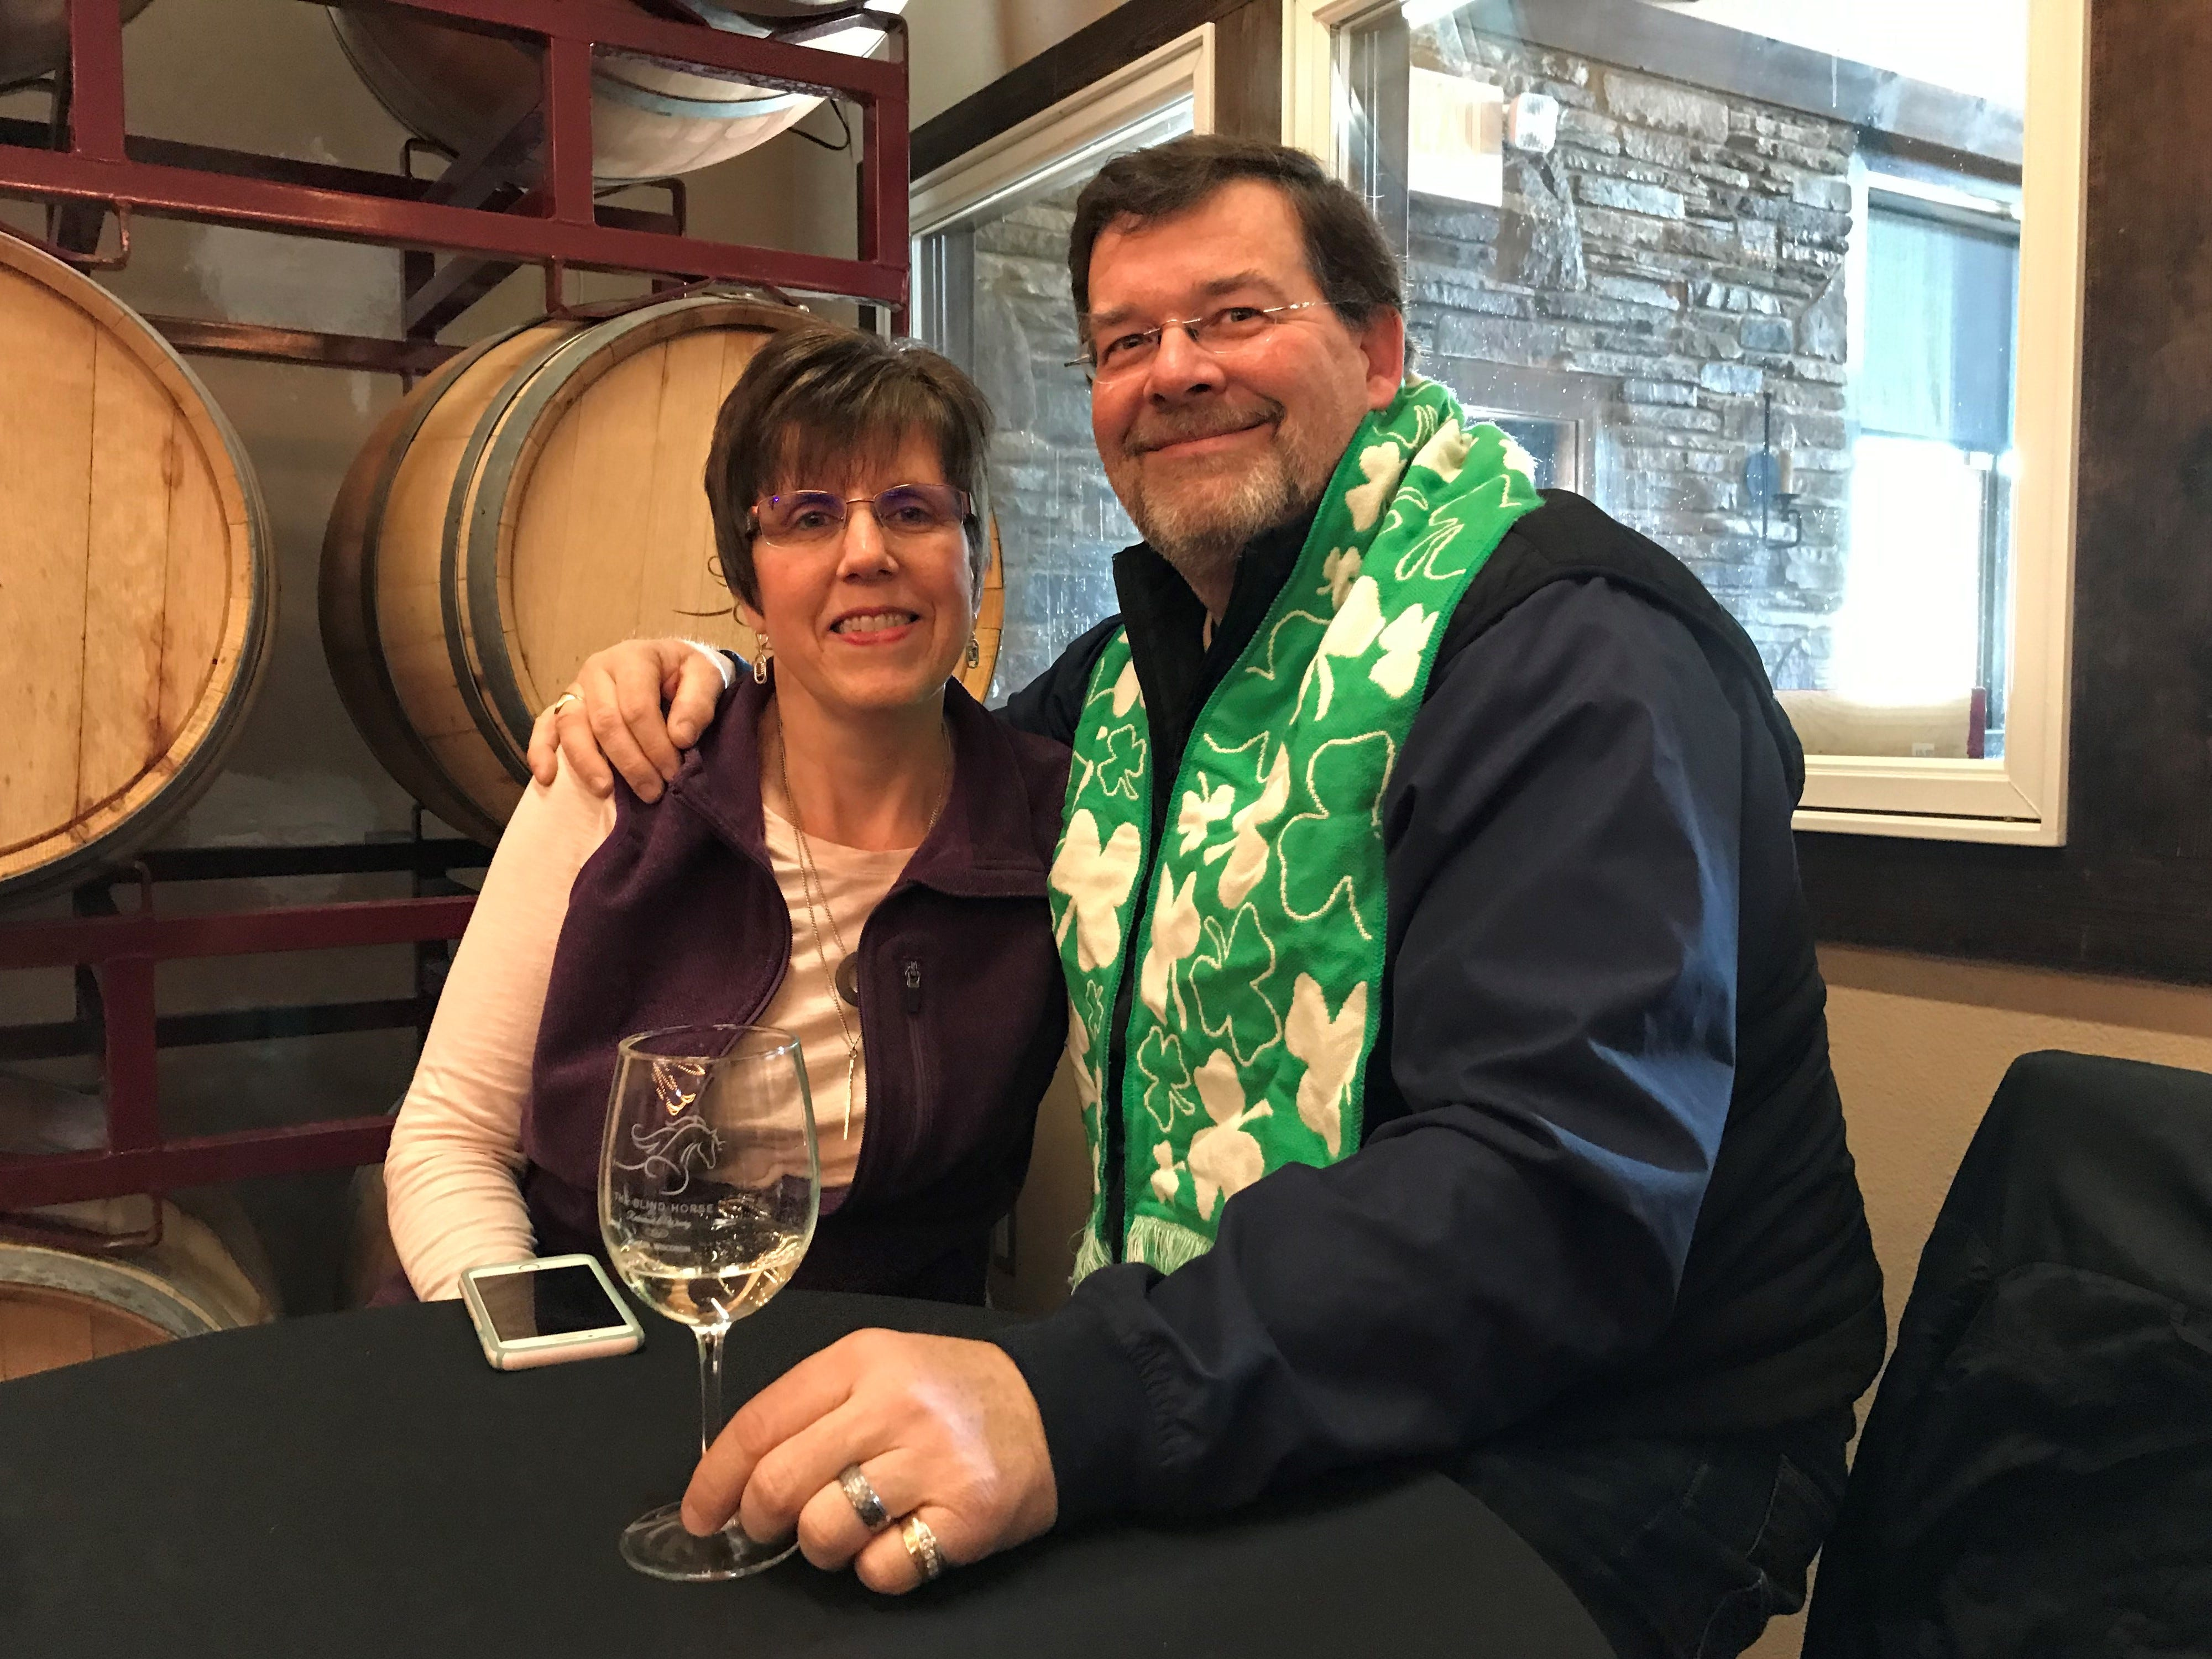 Cheri and Steve Ewig attended the launch of the second round of ice wine are part of the Blind Horse's wine club. The pair love the atmosphere of the Blind Horse and are huge fans of the ice wine offered.